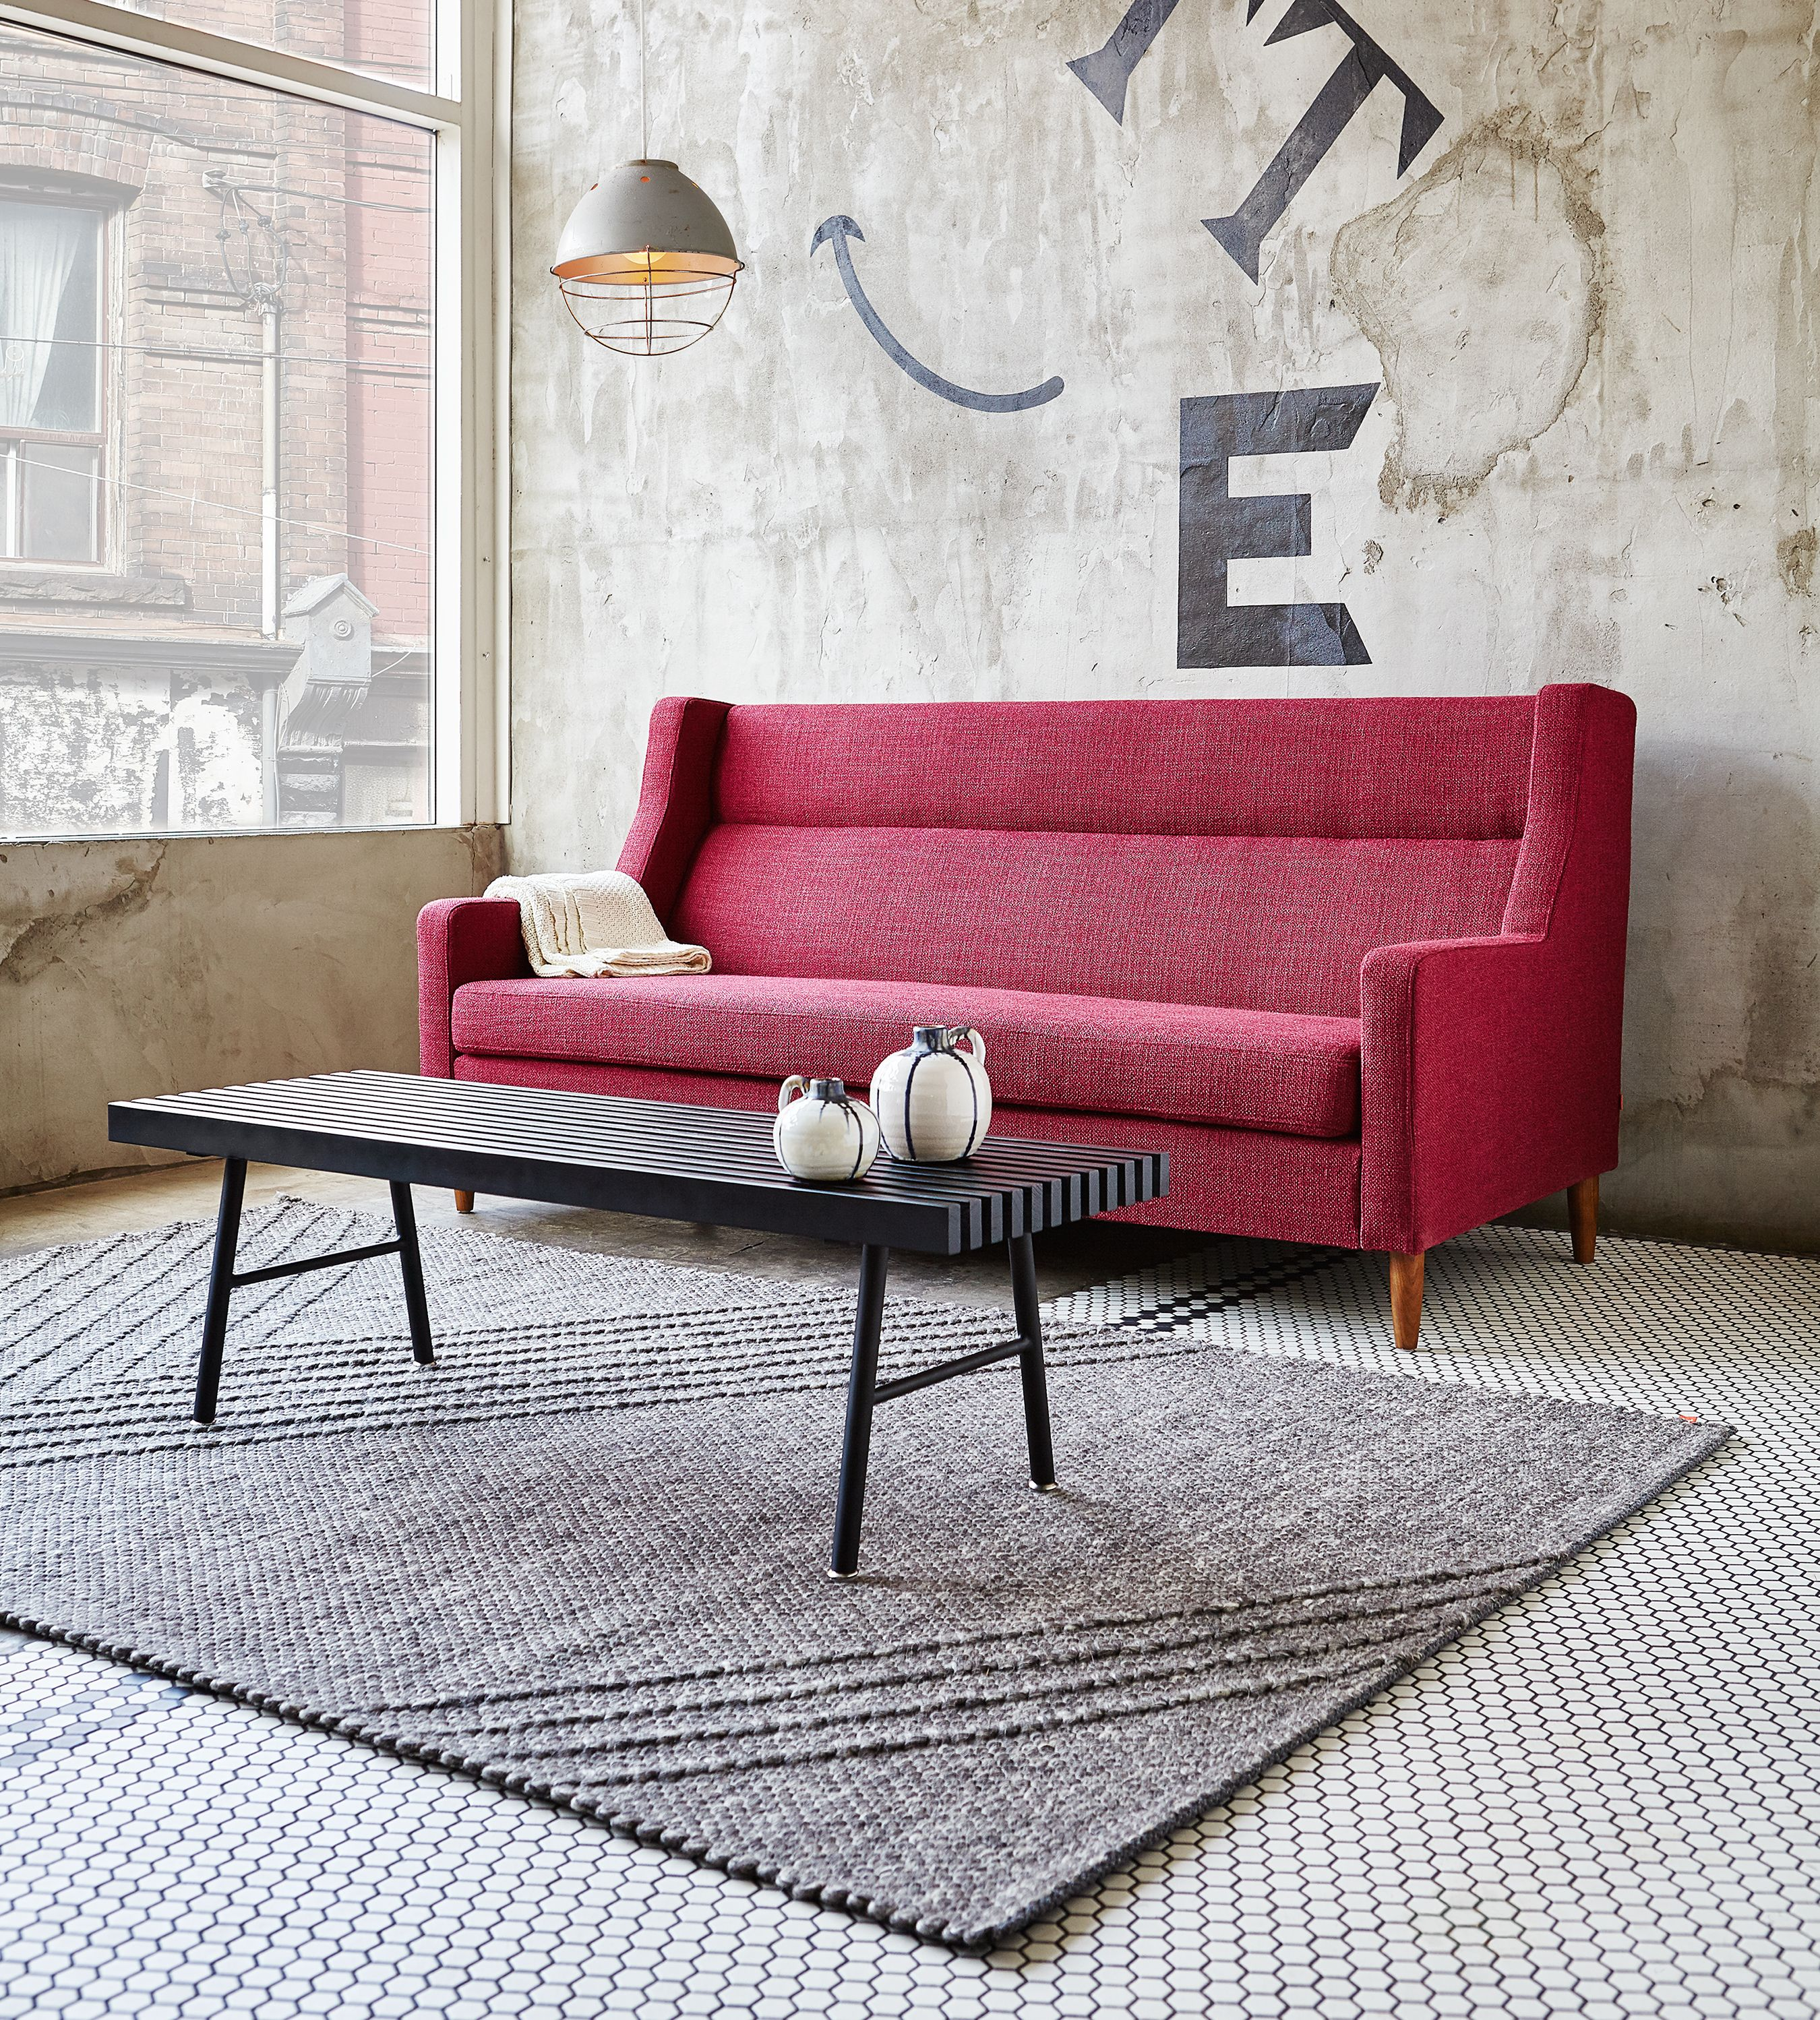 New Contemporary Furniture Designs From Gus Modern